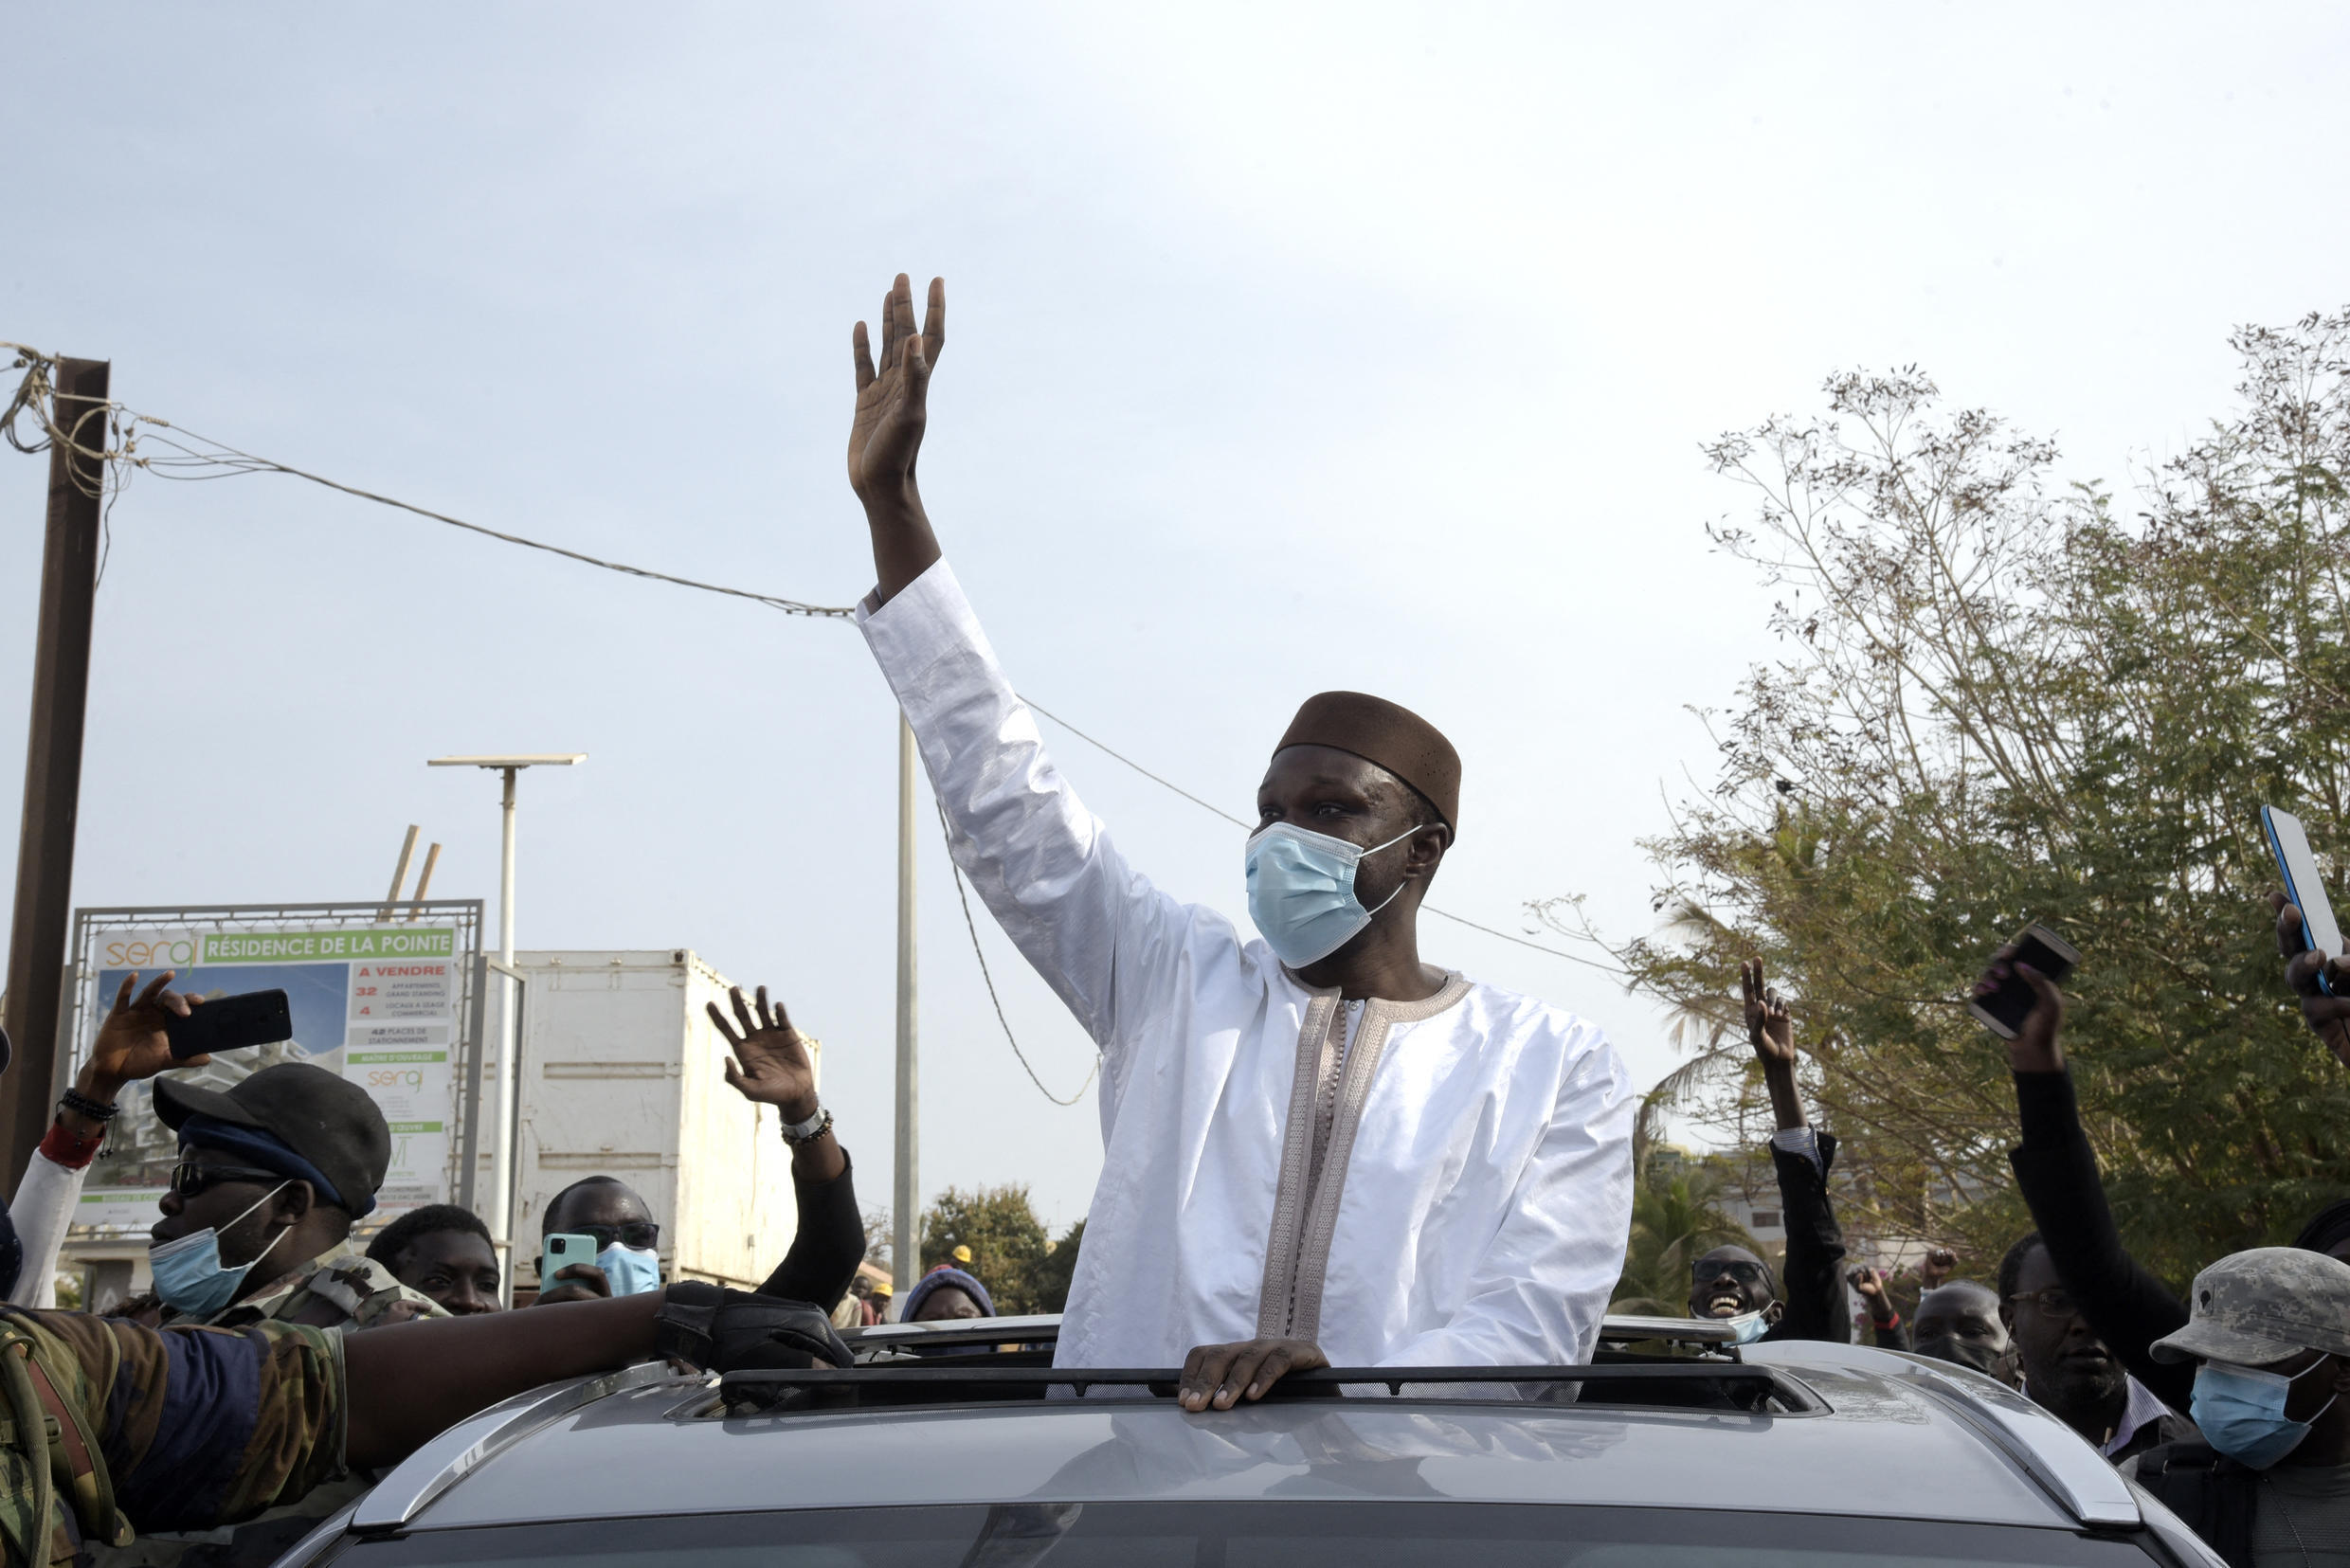 Senegalese opposition leader Ousmane Sonko waves to supporters in Dakar, prior to his arrest. 3 March 2021.